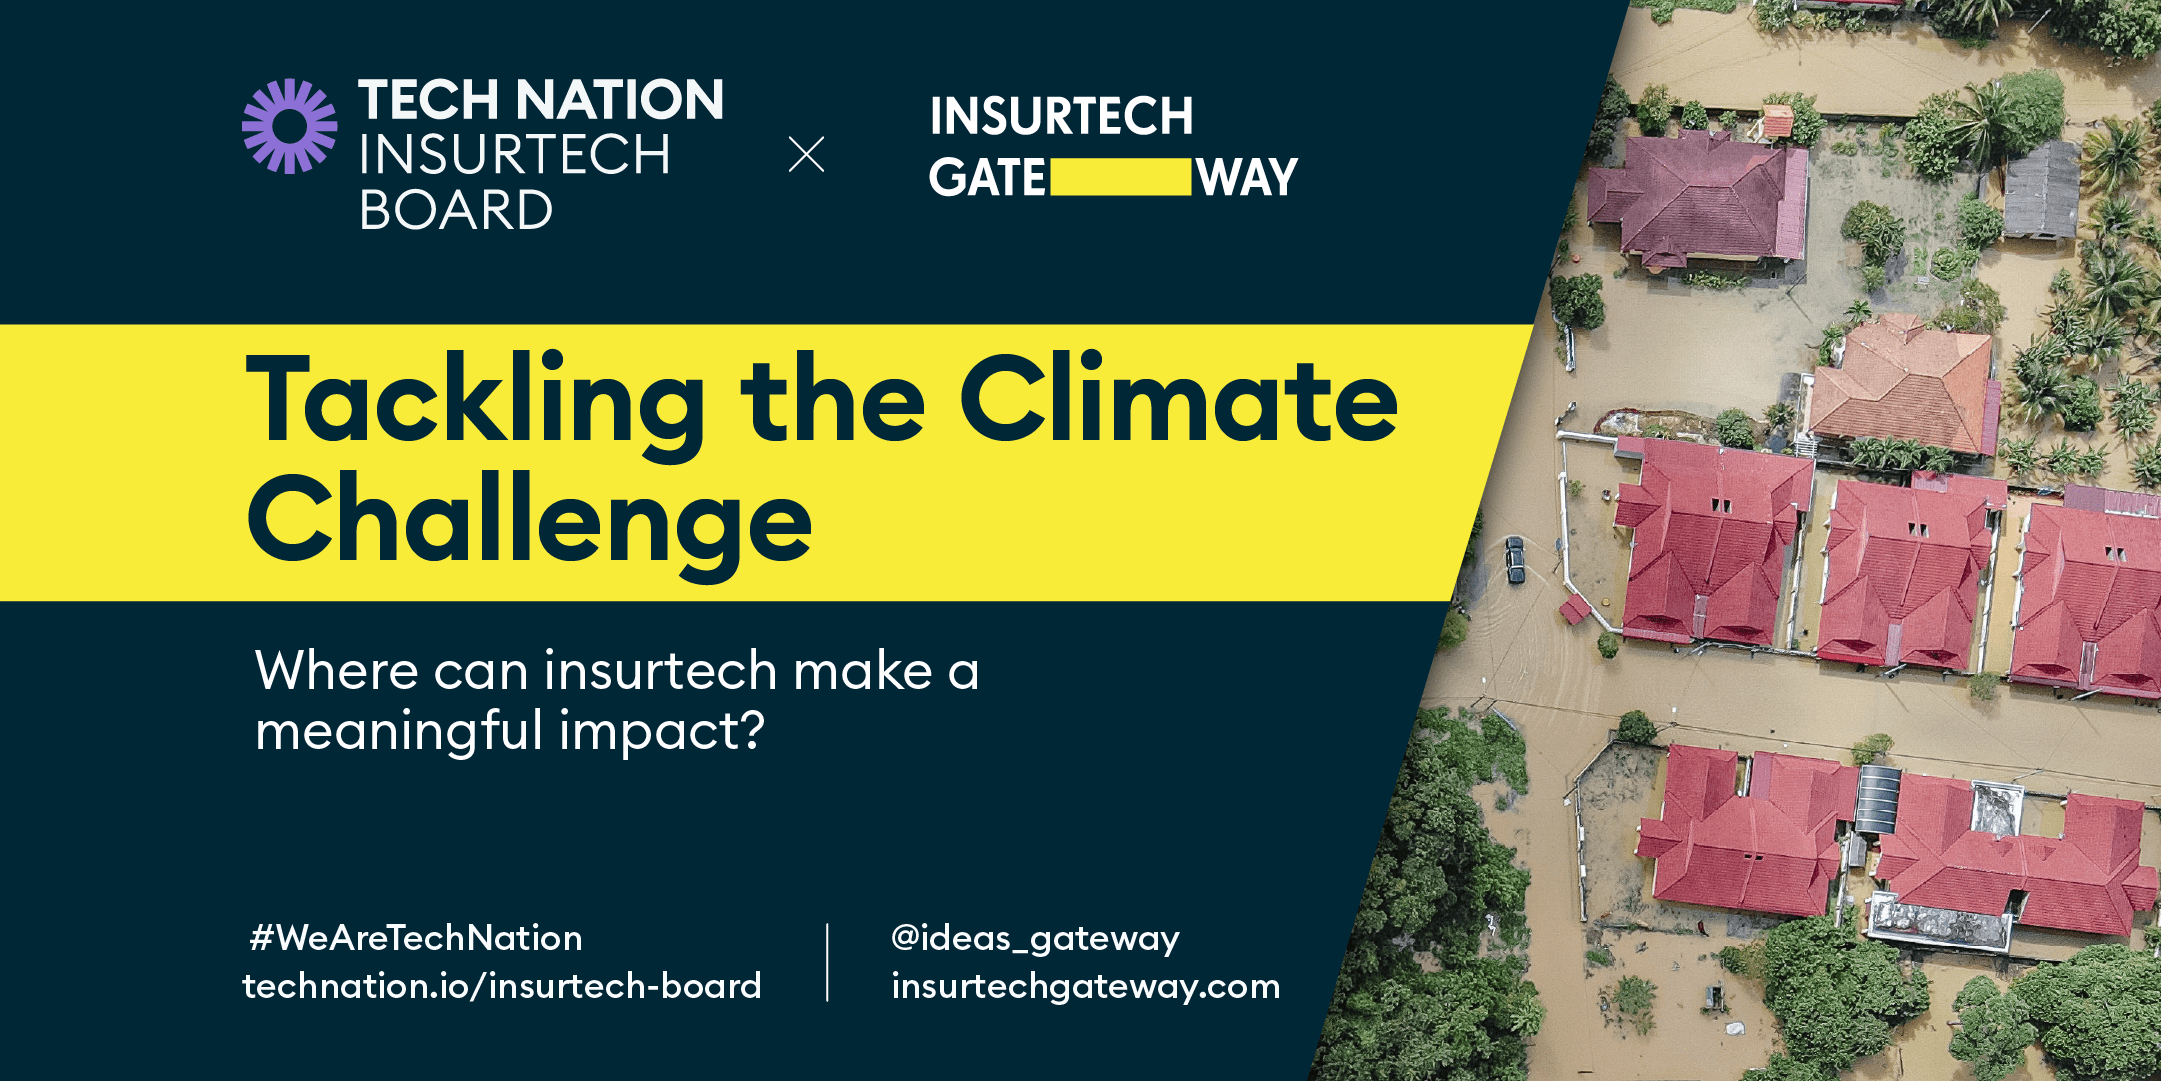 Insurtech tackling climate resilience